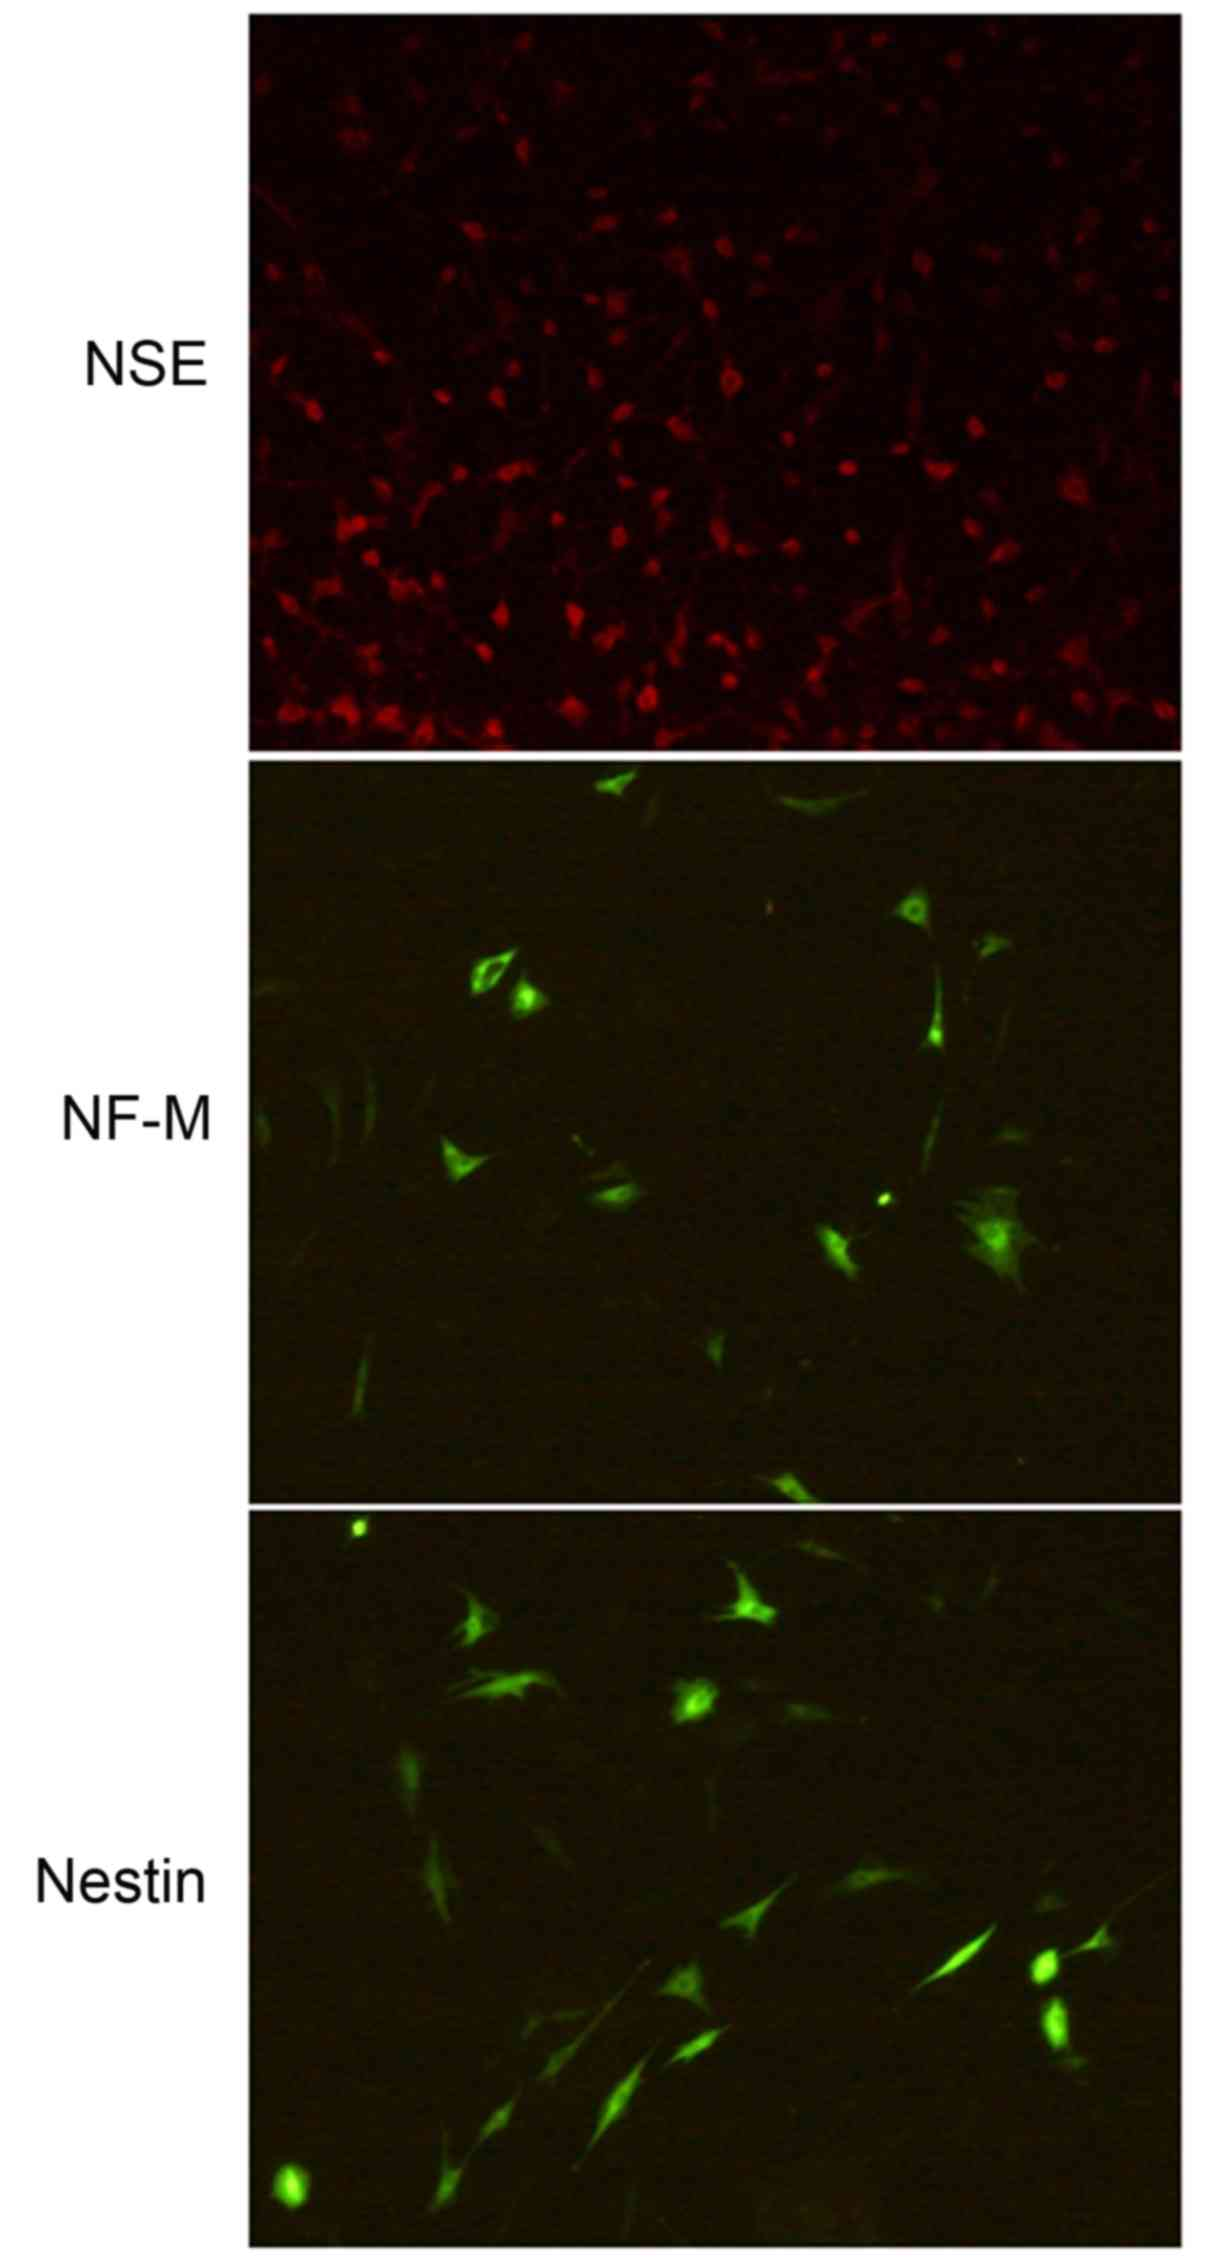 Fasudil may induce the differentiation of bone marrow